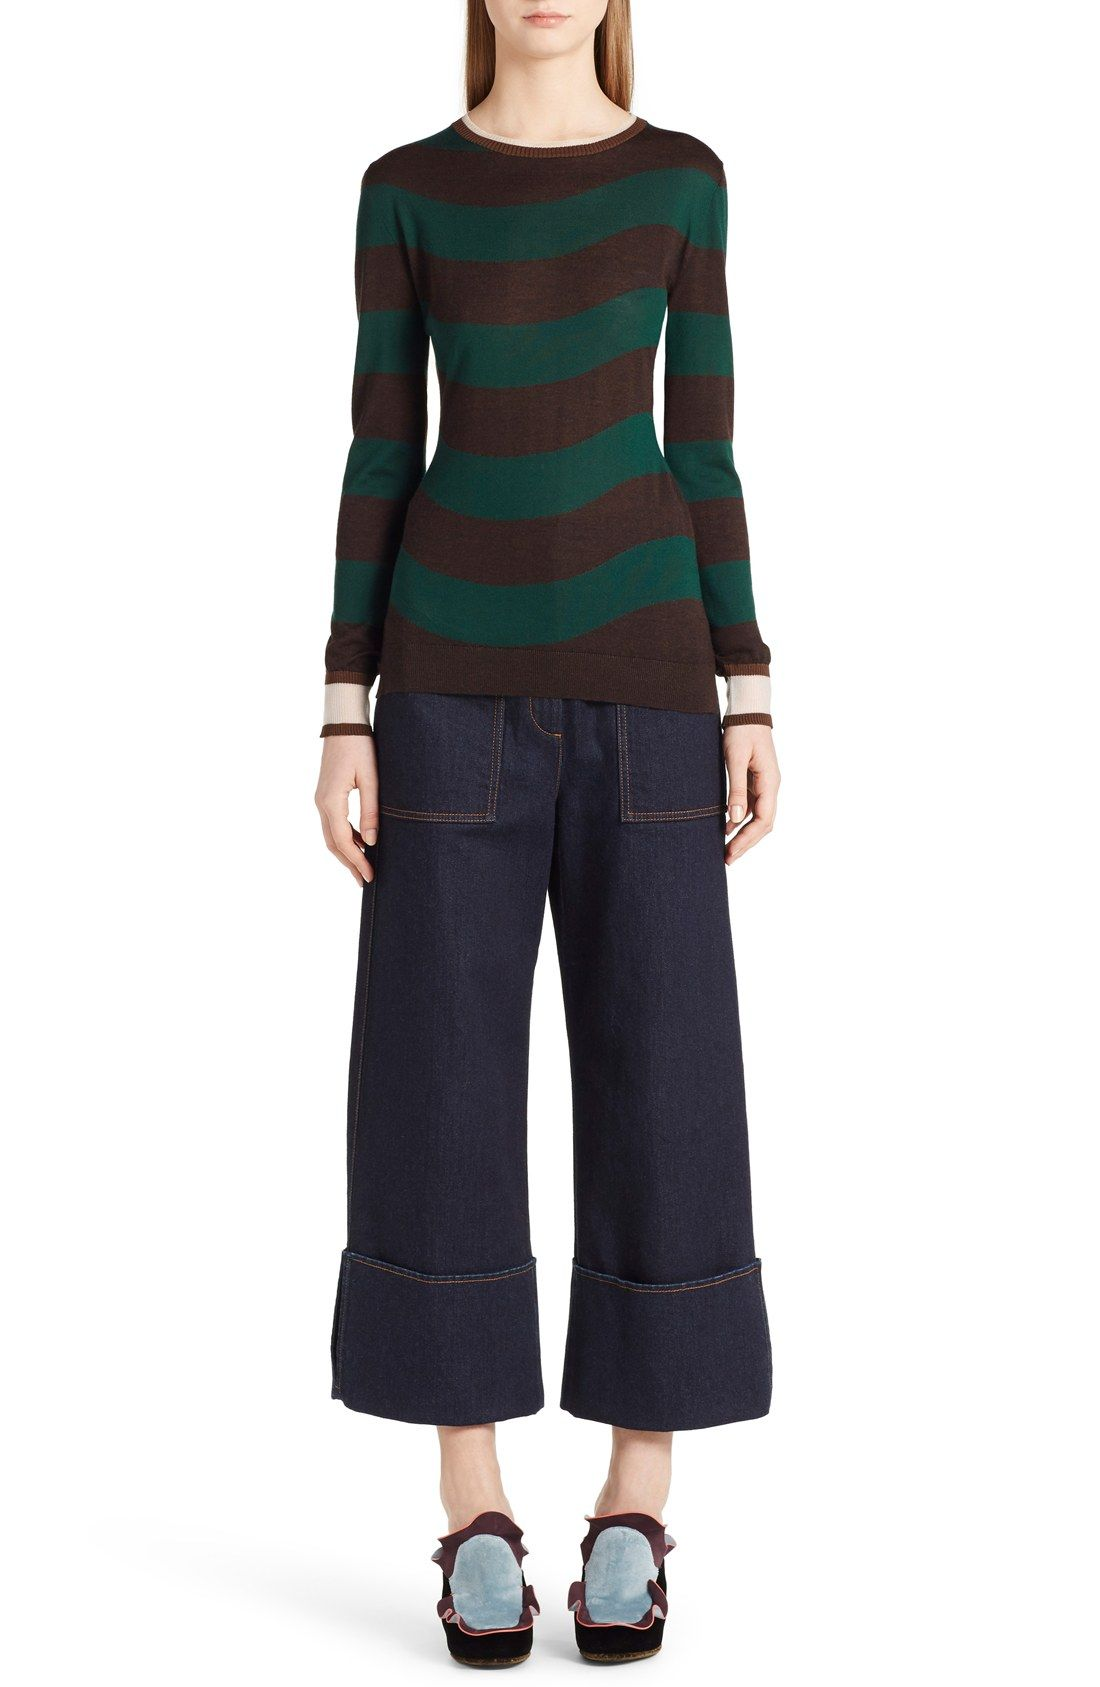 Two-tone stripes subtly ebb and flow on this crewneck cashmere-blend sweater finished with banded rib-knit cuffs for added graphic contrast.27